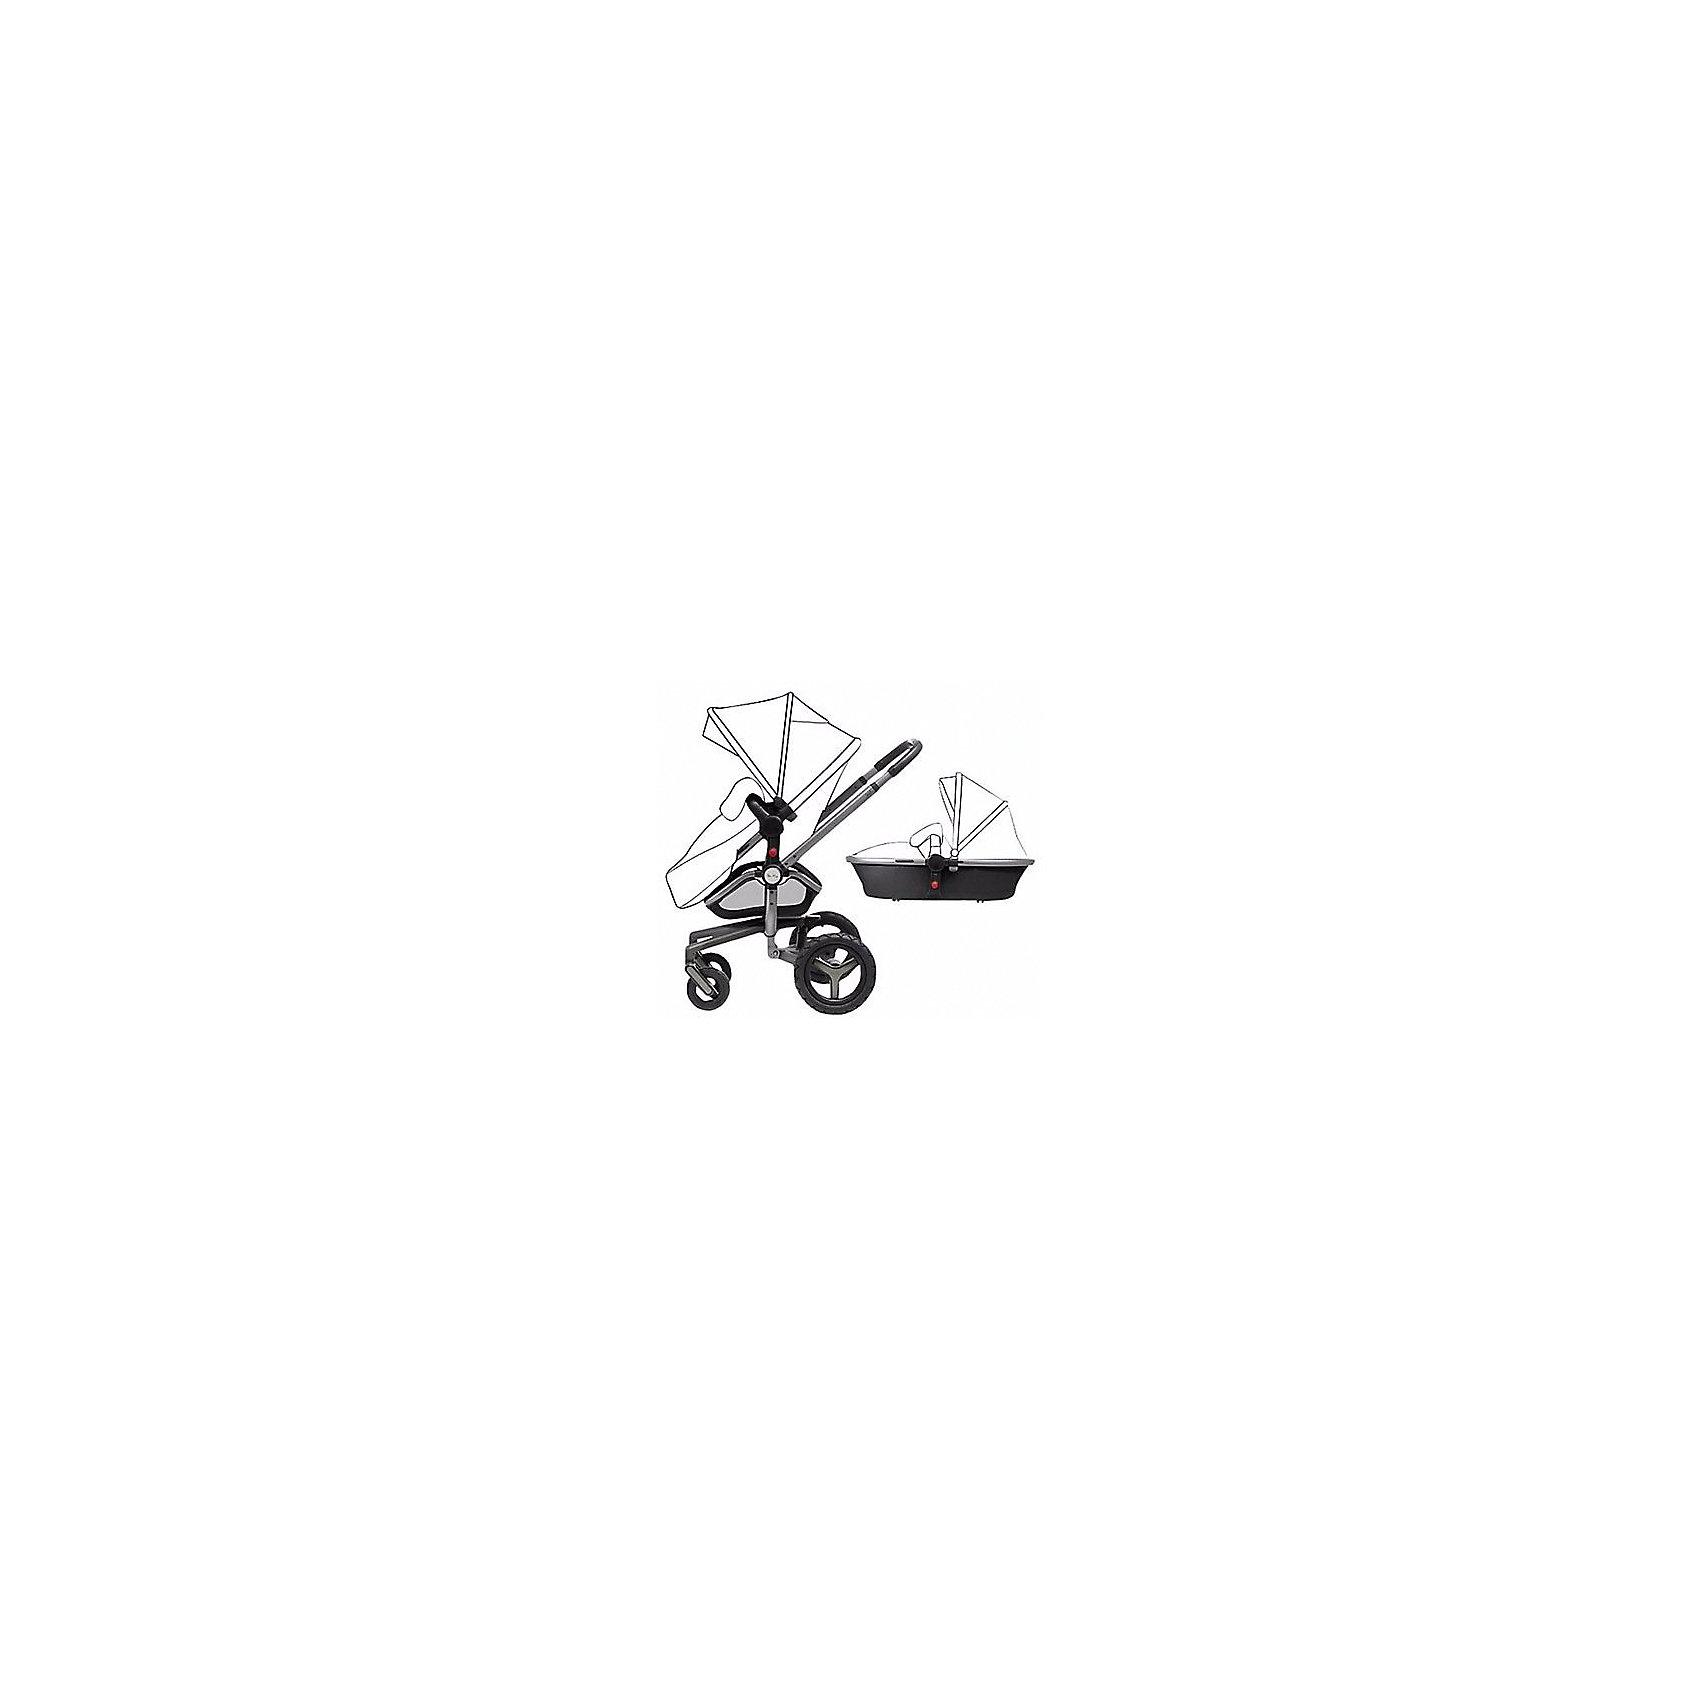 Коляска 2 в 1 Surf, Silver Cross, carrycot/chassis graphite